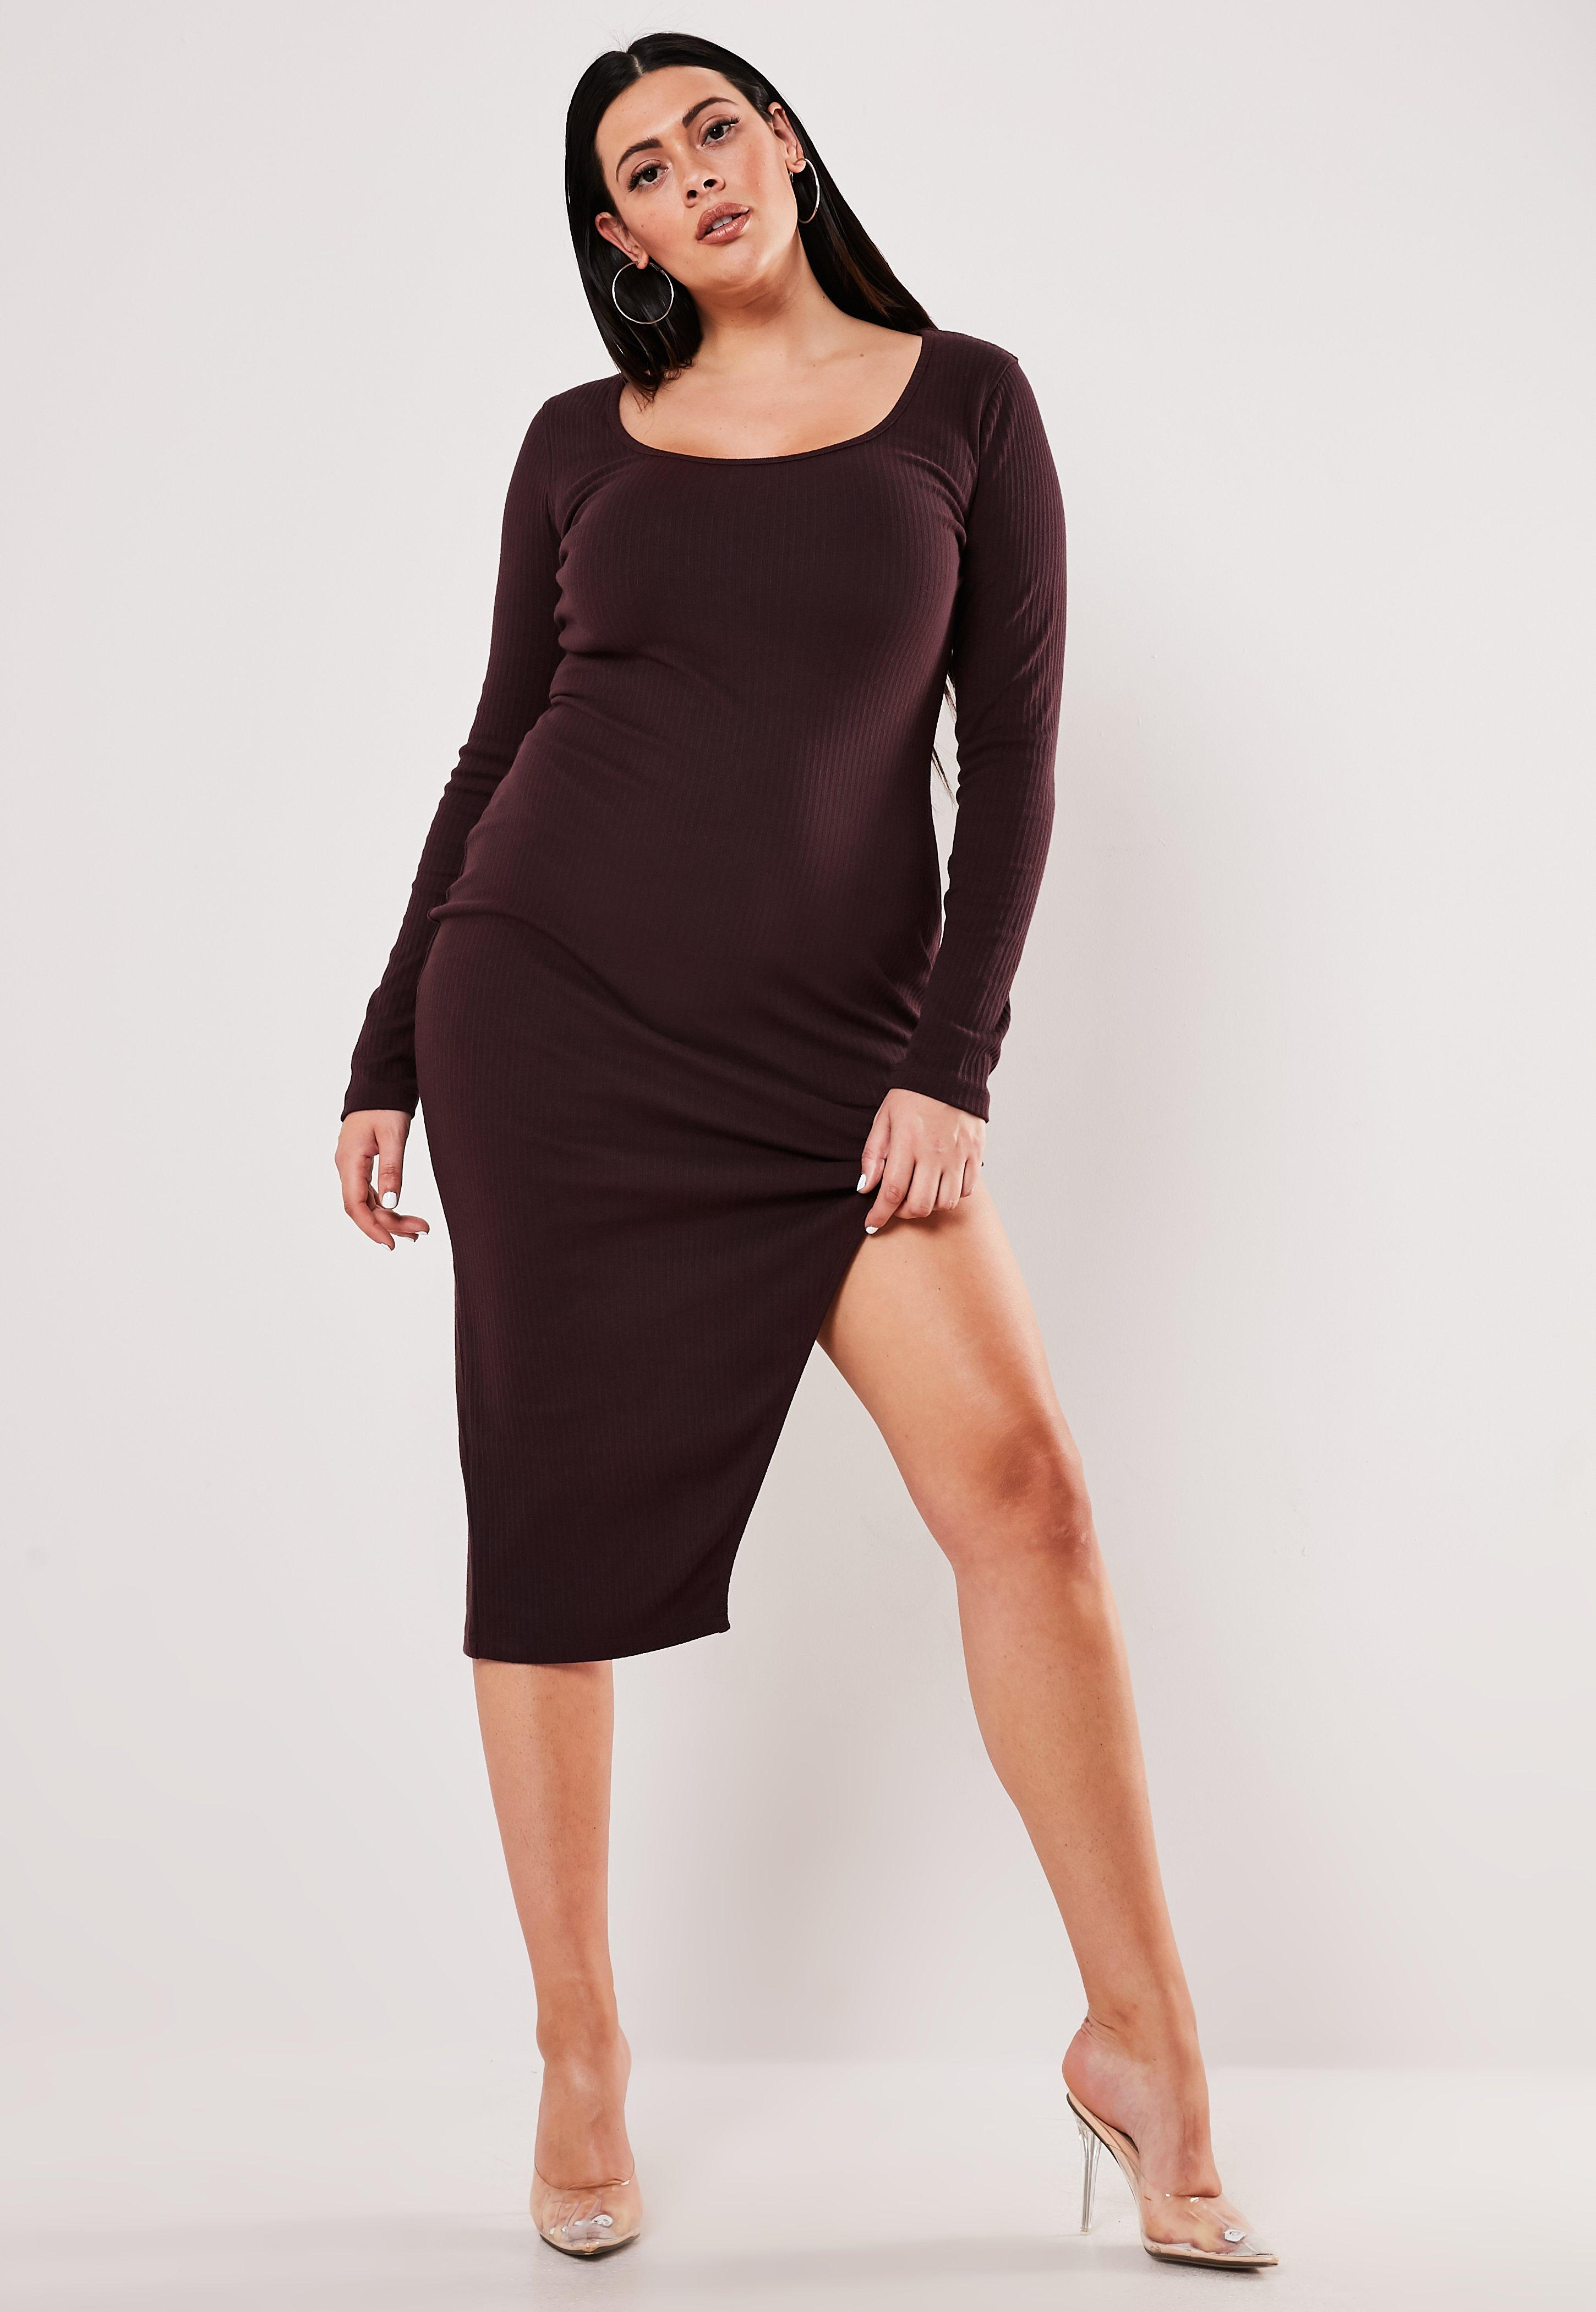 2e0363f8726cc Bodycon Dresses | Form Fitting Dresses Online - Missguided IE